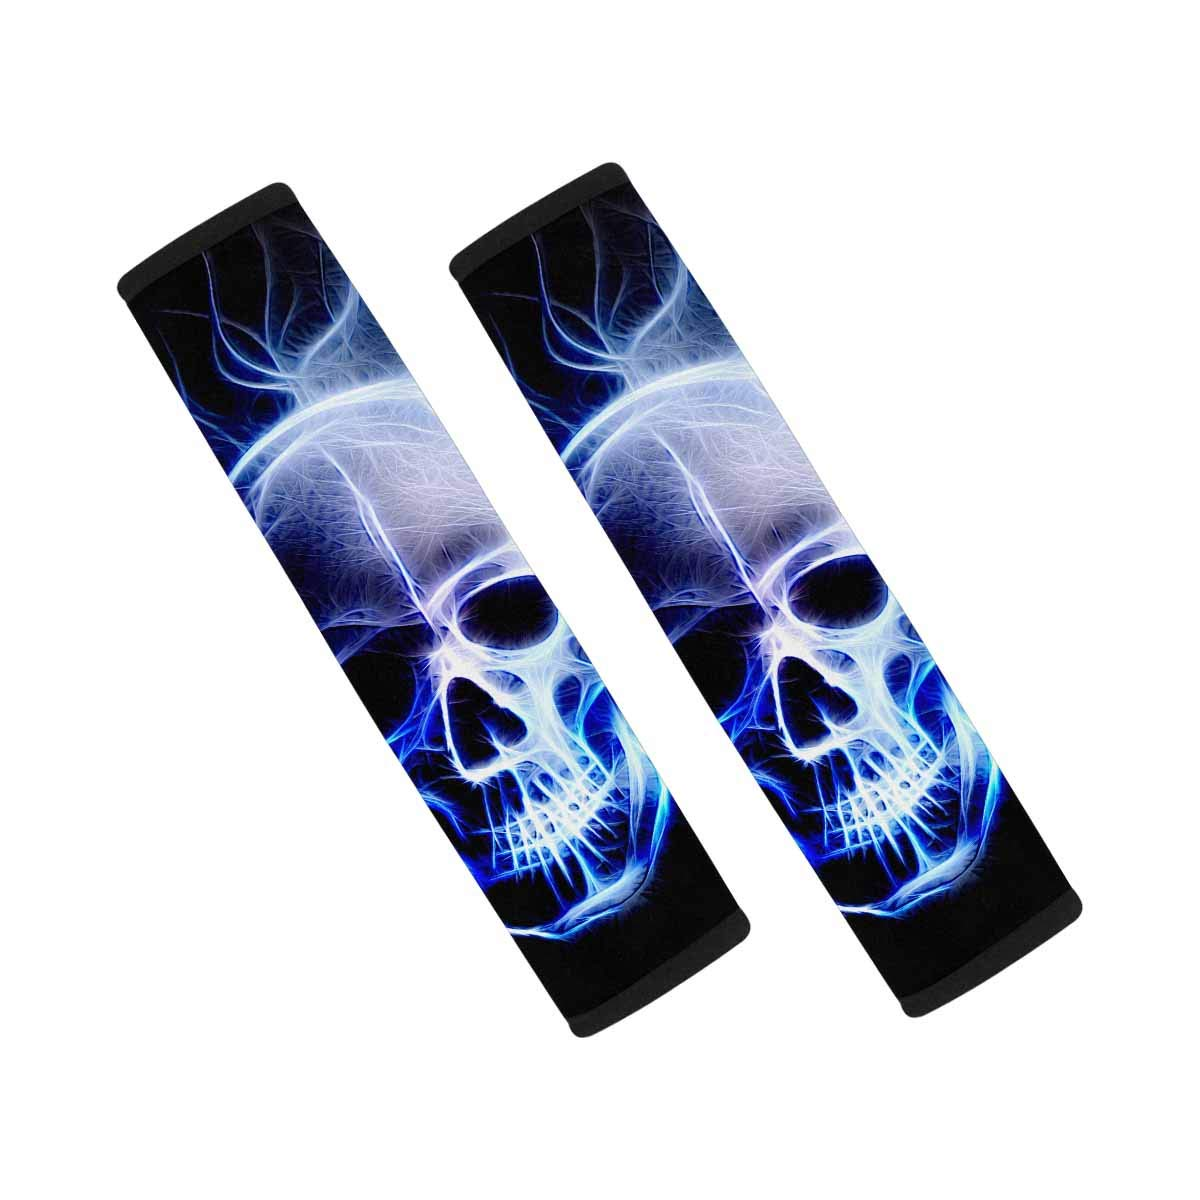 INTERESTPRINT Skull Black 2 Packs Seat Belt Shoulder Strap Covers Protector to Relieve Stress Neck and Shoulder by INTERESTPRINT